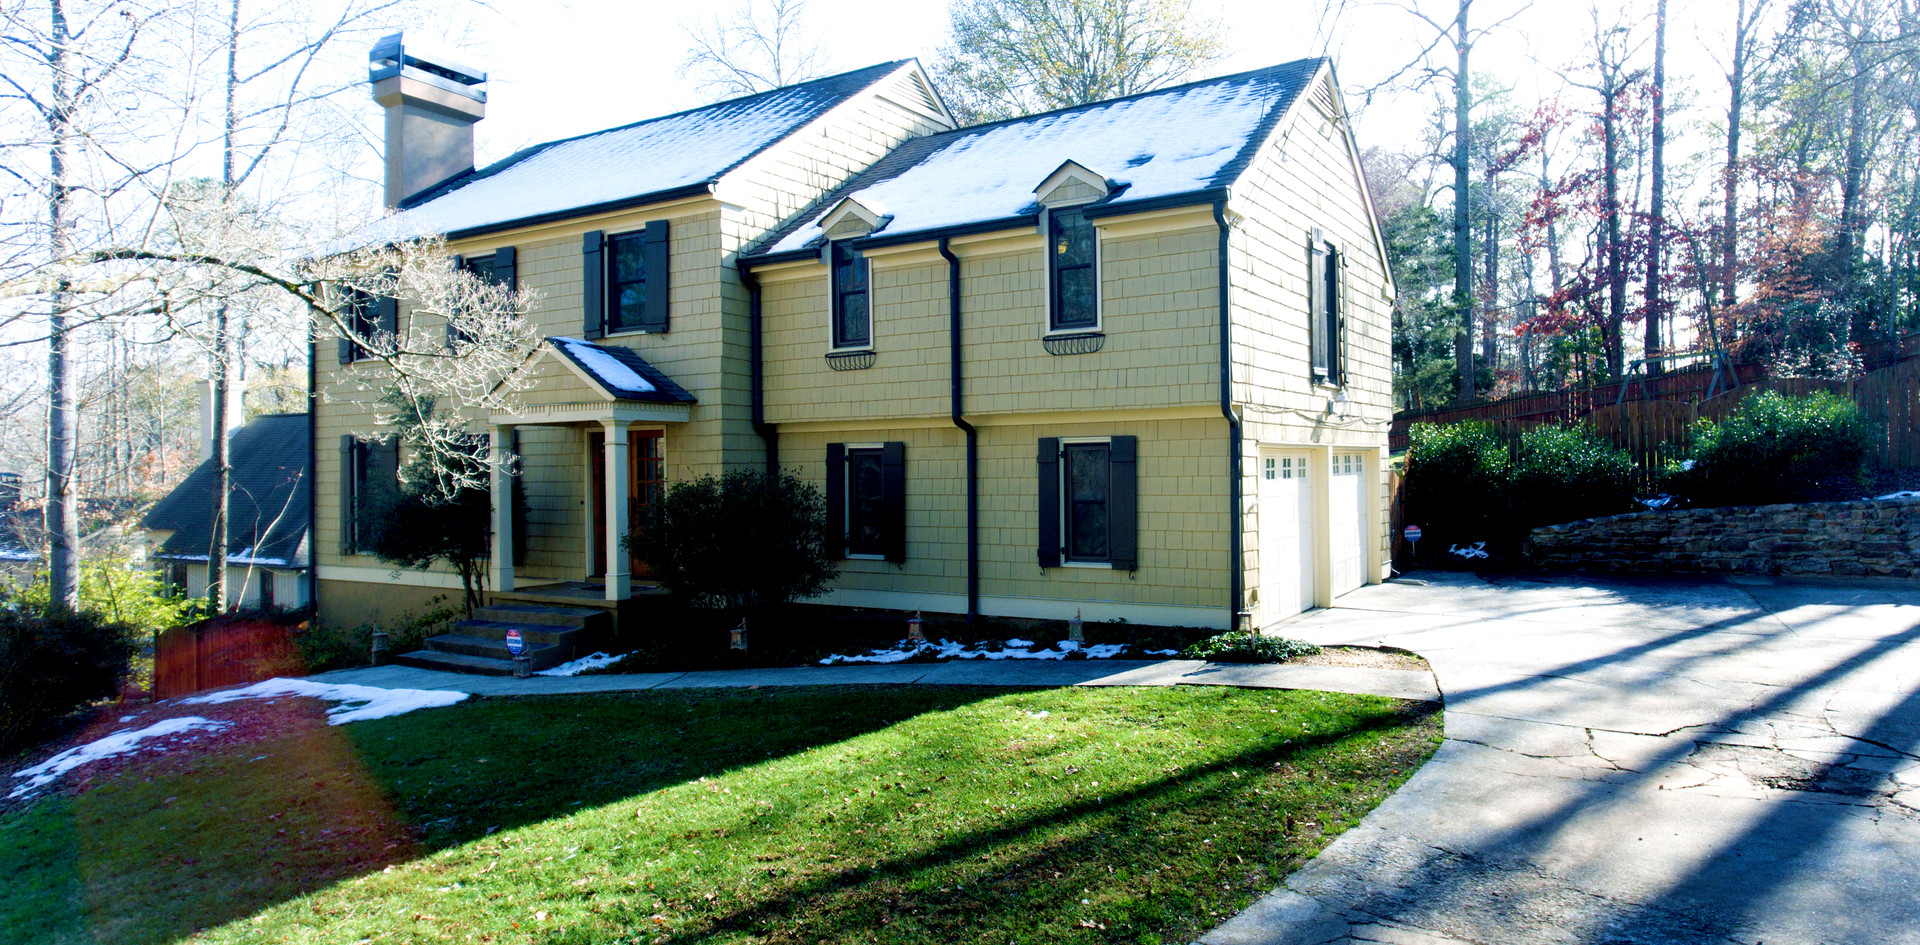 SOLD for $421,500 - Represented Seller